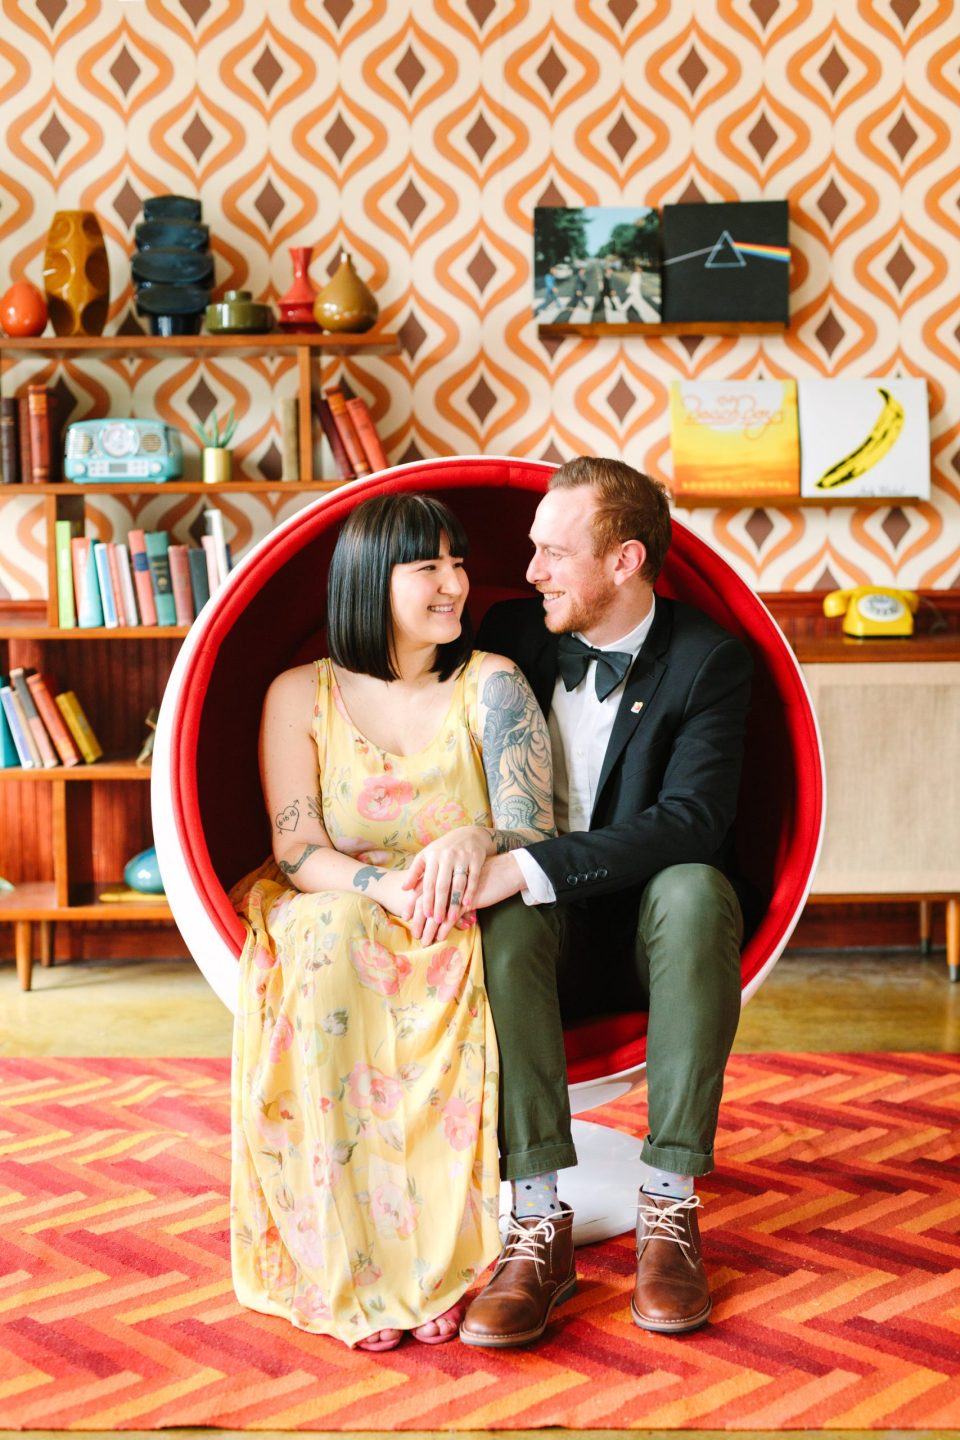 Couple in round chair surrounded by retro decor www.marycostaweddings.com